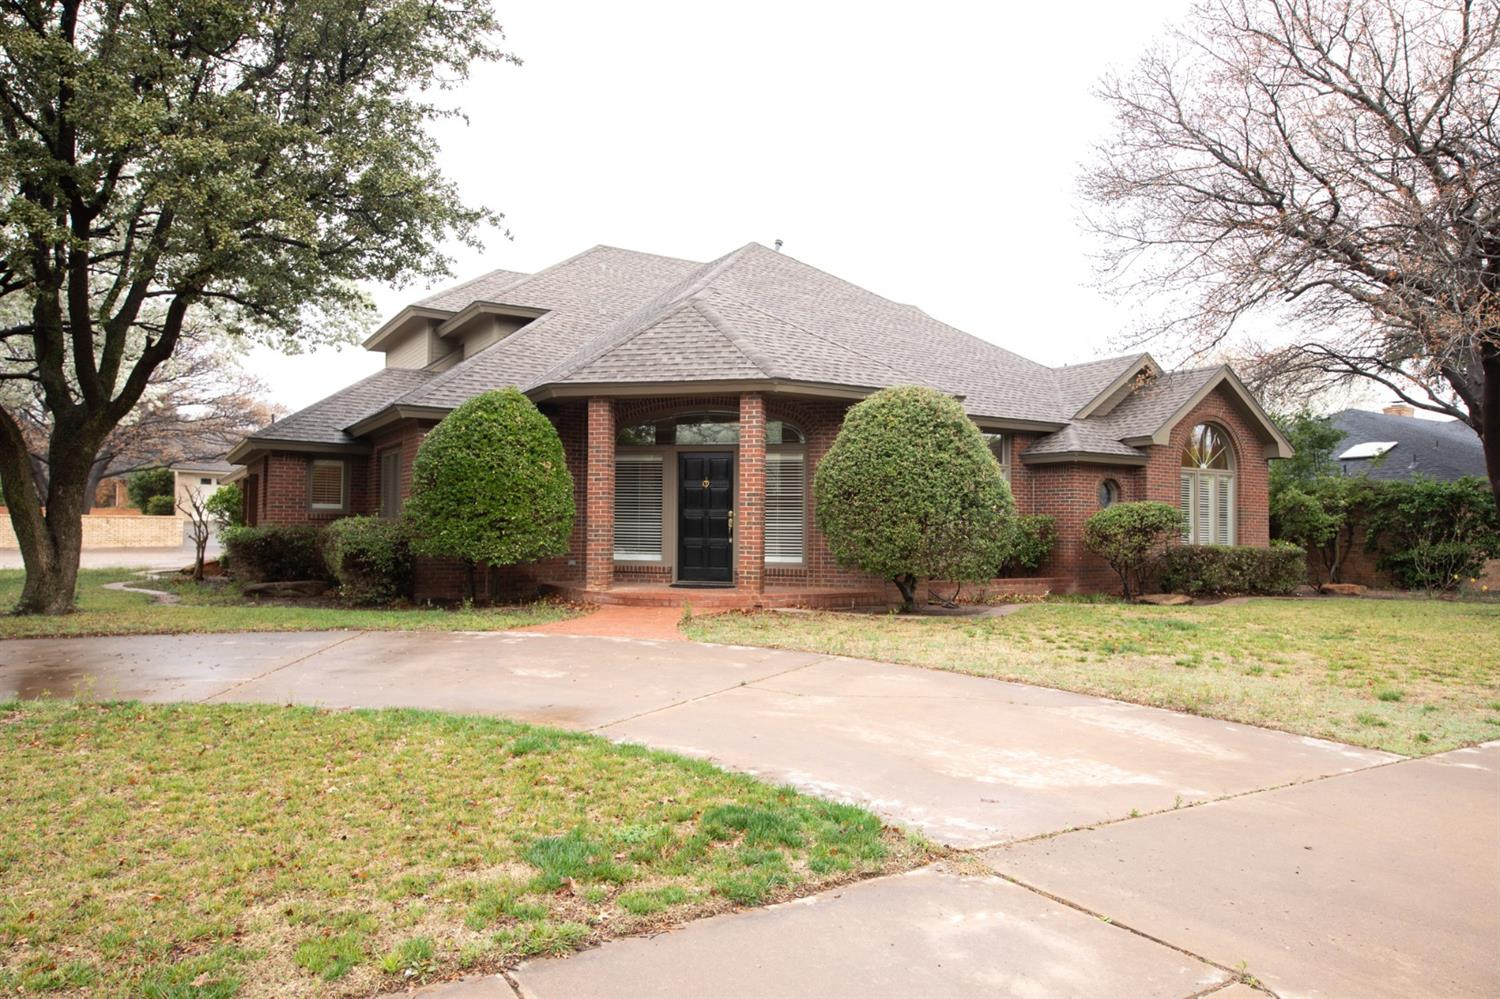 Located in Kingsgate on corner lot! Spacious 3 bedroom, 4 bath home with 2 living areas, 2 dining areas, large isolated master retreat with luxury bath, abundance of storage throughout, 3 car garage and much more. Priced to sell! A must see!